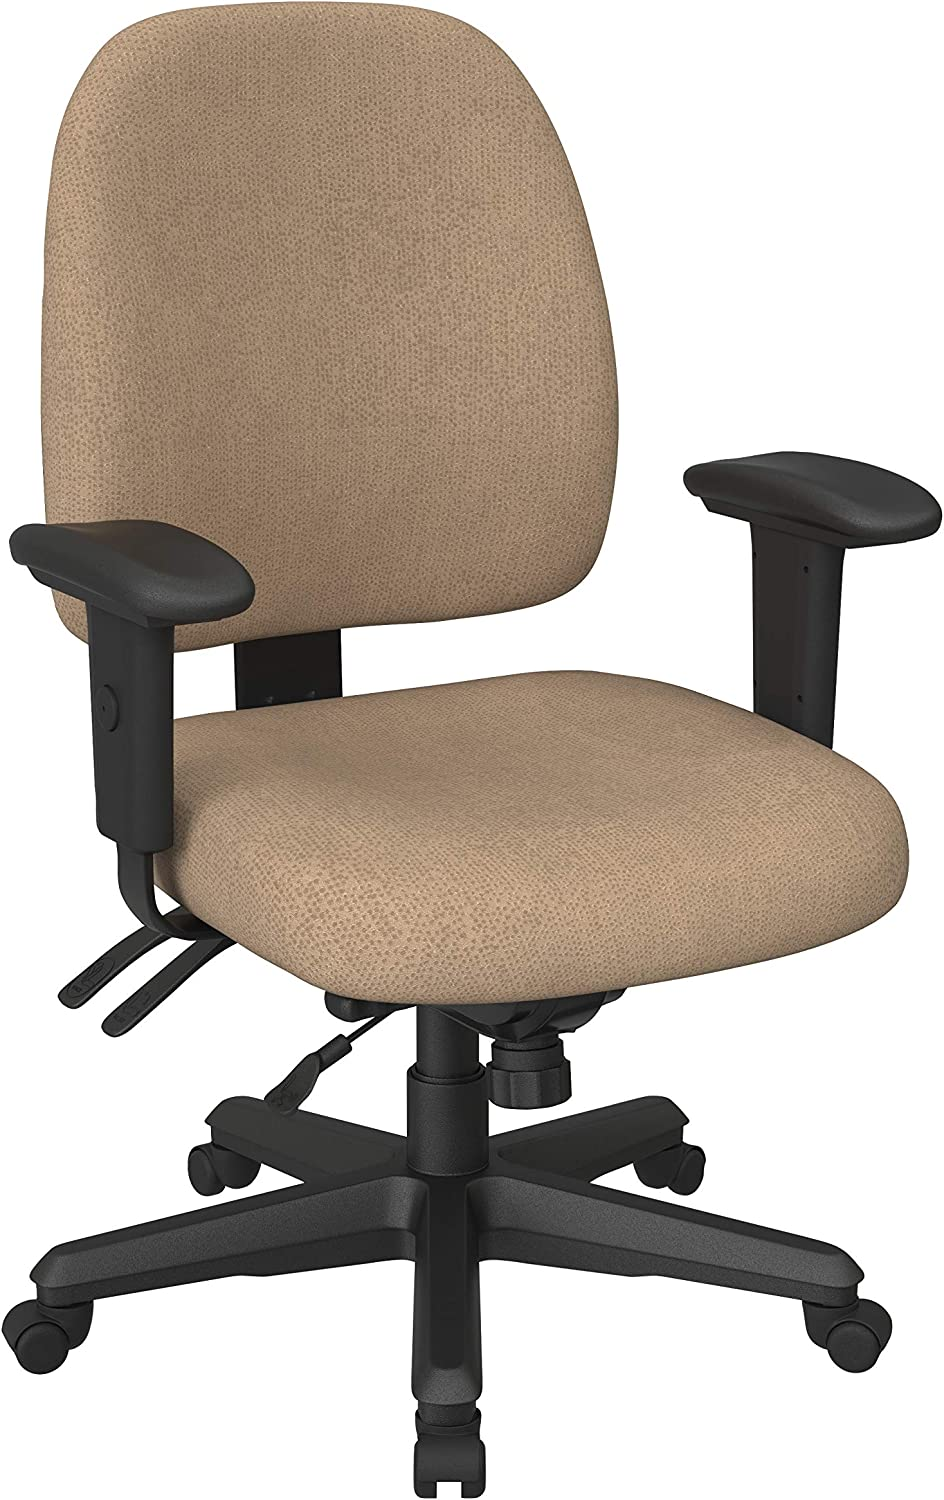 Office Star Mid Back Ergonomic Office Desk Chair with Adjustable Height, Tilt, and Padded Arm Rests in Twilight Angora Fabric